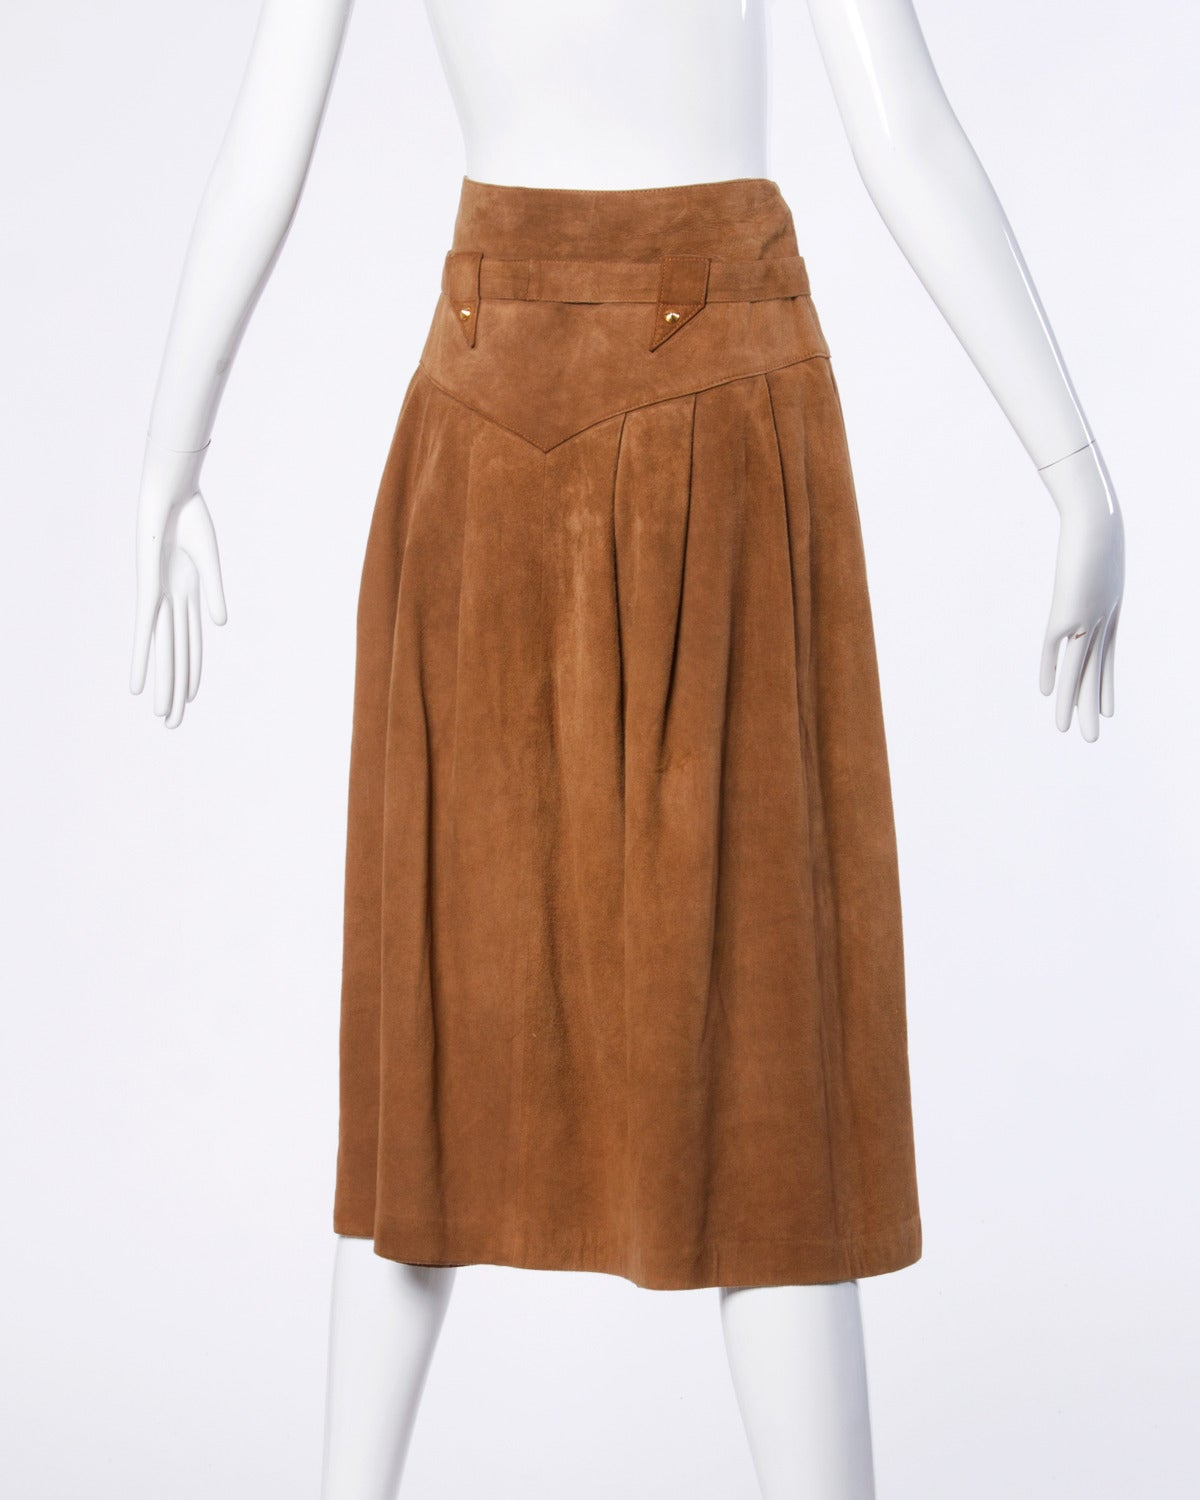 Claude Montana pour Ideal Cuir Vintage 1980s 80s Brown Leather Skirt In Excellent Condition For Sale In Sparks, NV